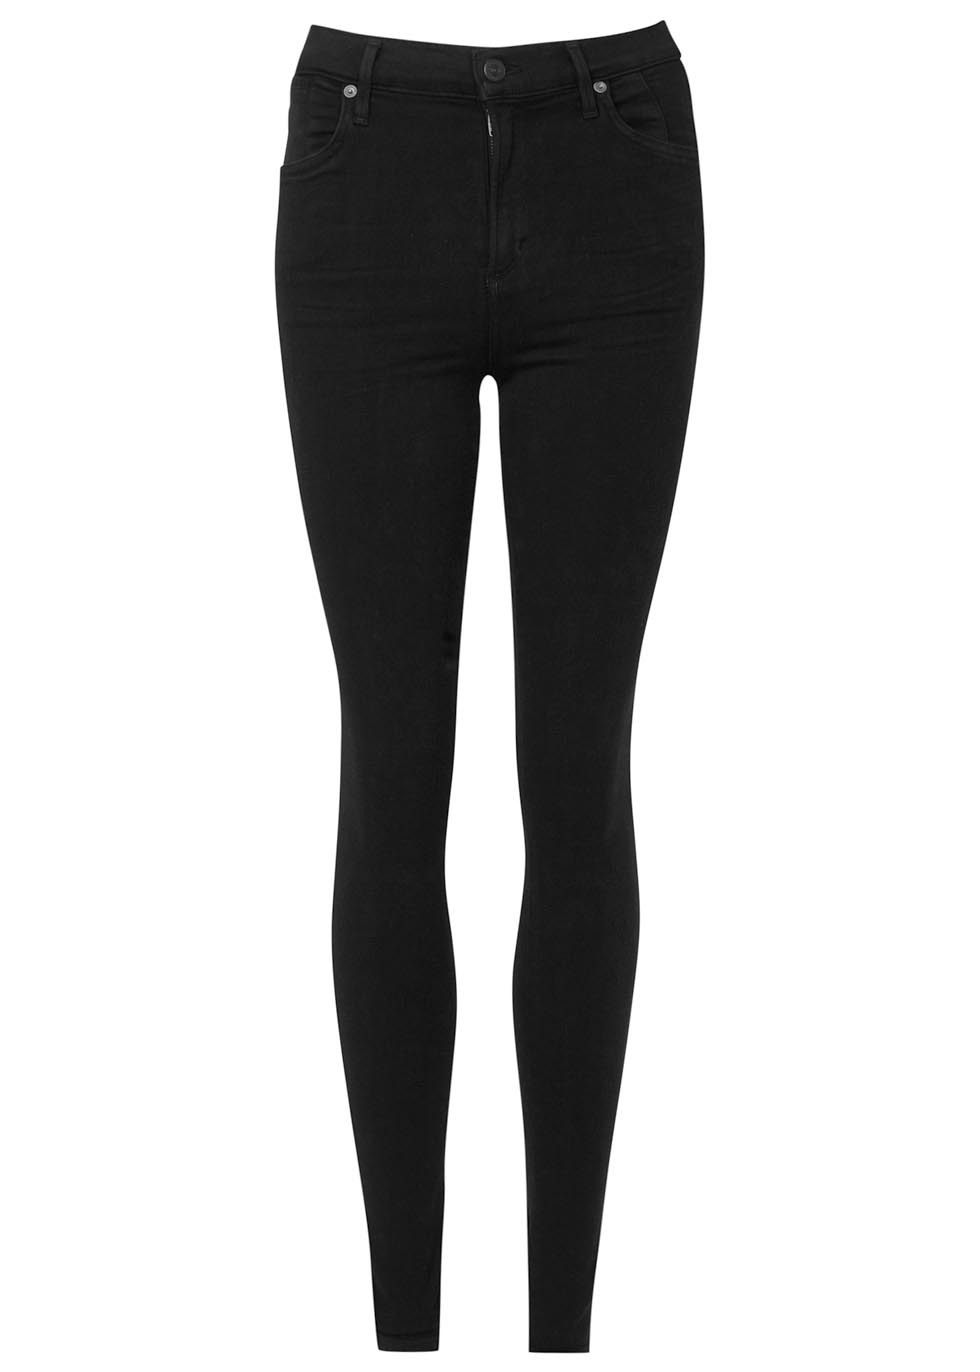 Carlie Sculpt Skinny Stretch Denim Jeans Size W31 - style: skinny leg; length: standard; pattern: plain; waist: mid/regular rise; predominant colour: black; occasions: casual; fibres: cotton - stretch; texture group: denim; pattern type: fabric; season: s/s 2016; wardrobe: basic